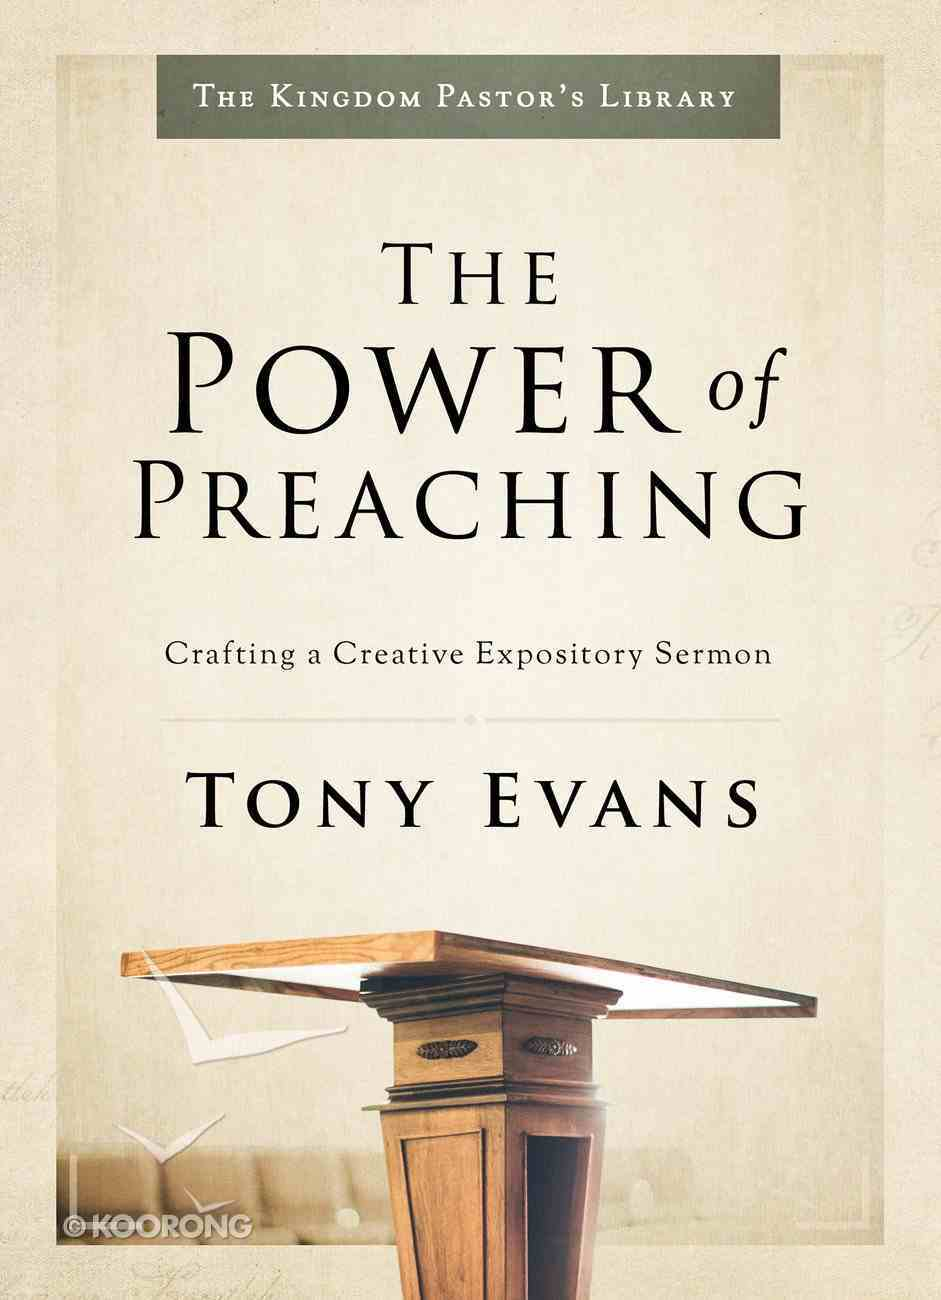 Kpt: Power of Preaching, The: Crafting a Creative Expository Sermon (The Kingdom Pastor's Library Series) Hardback